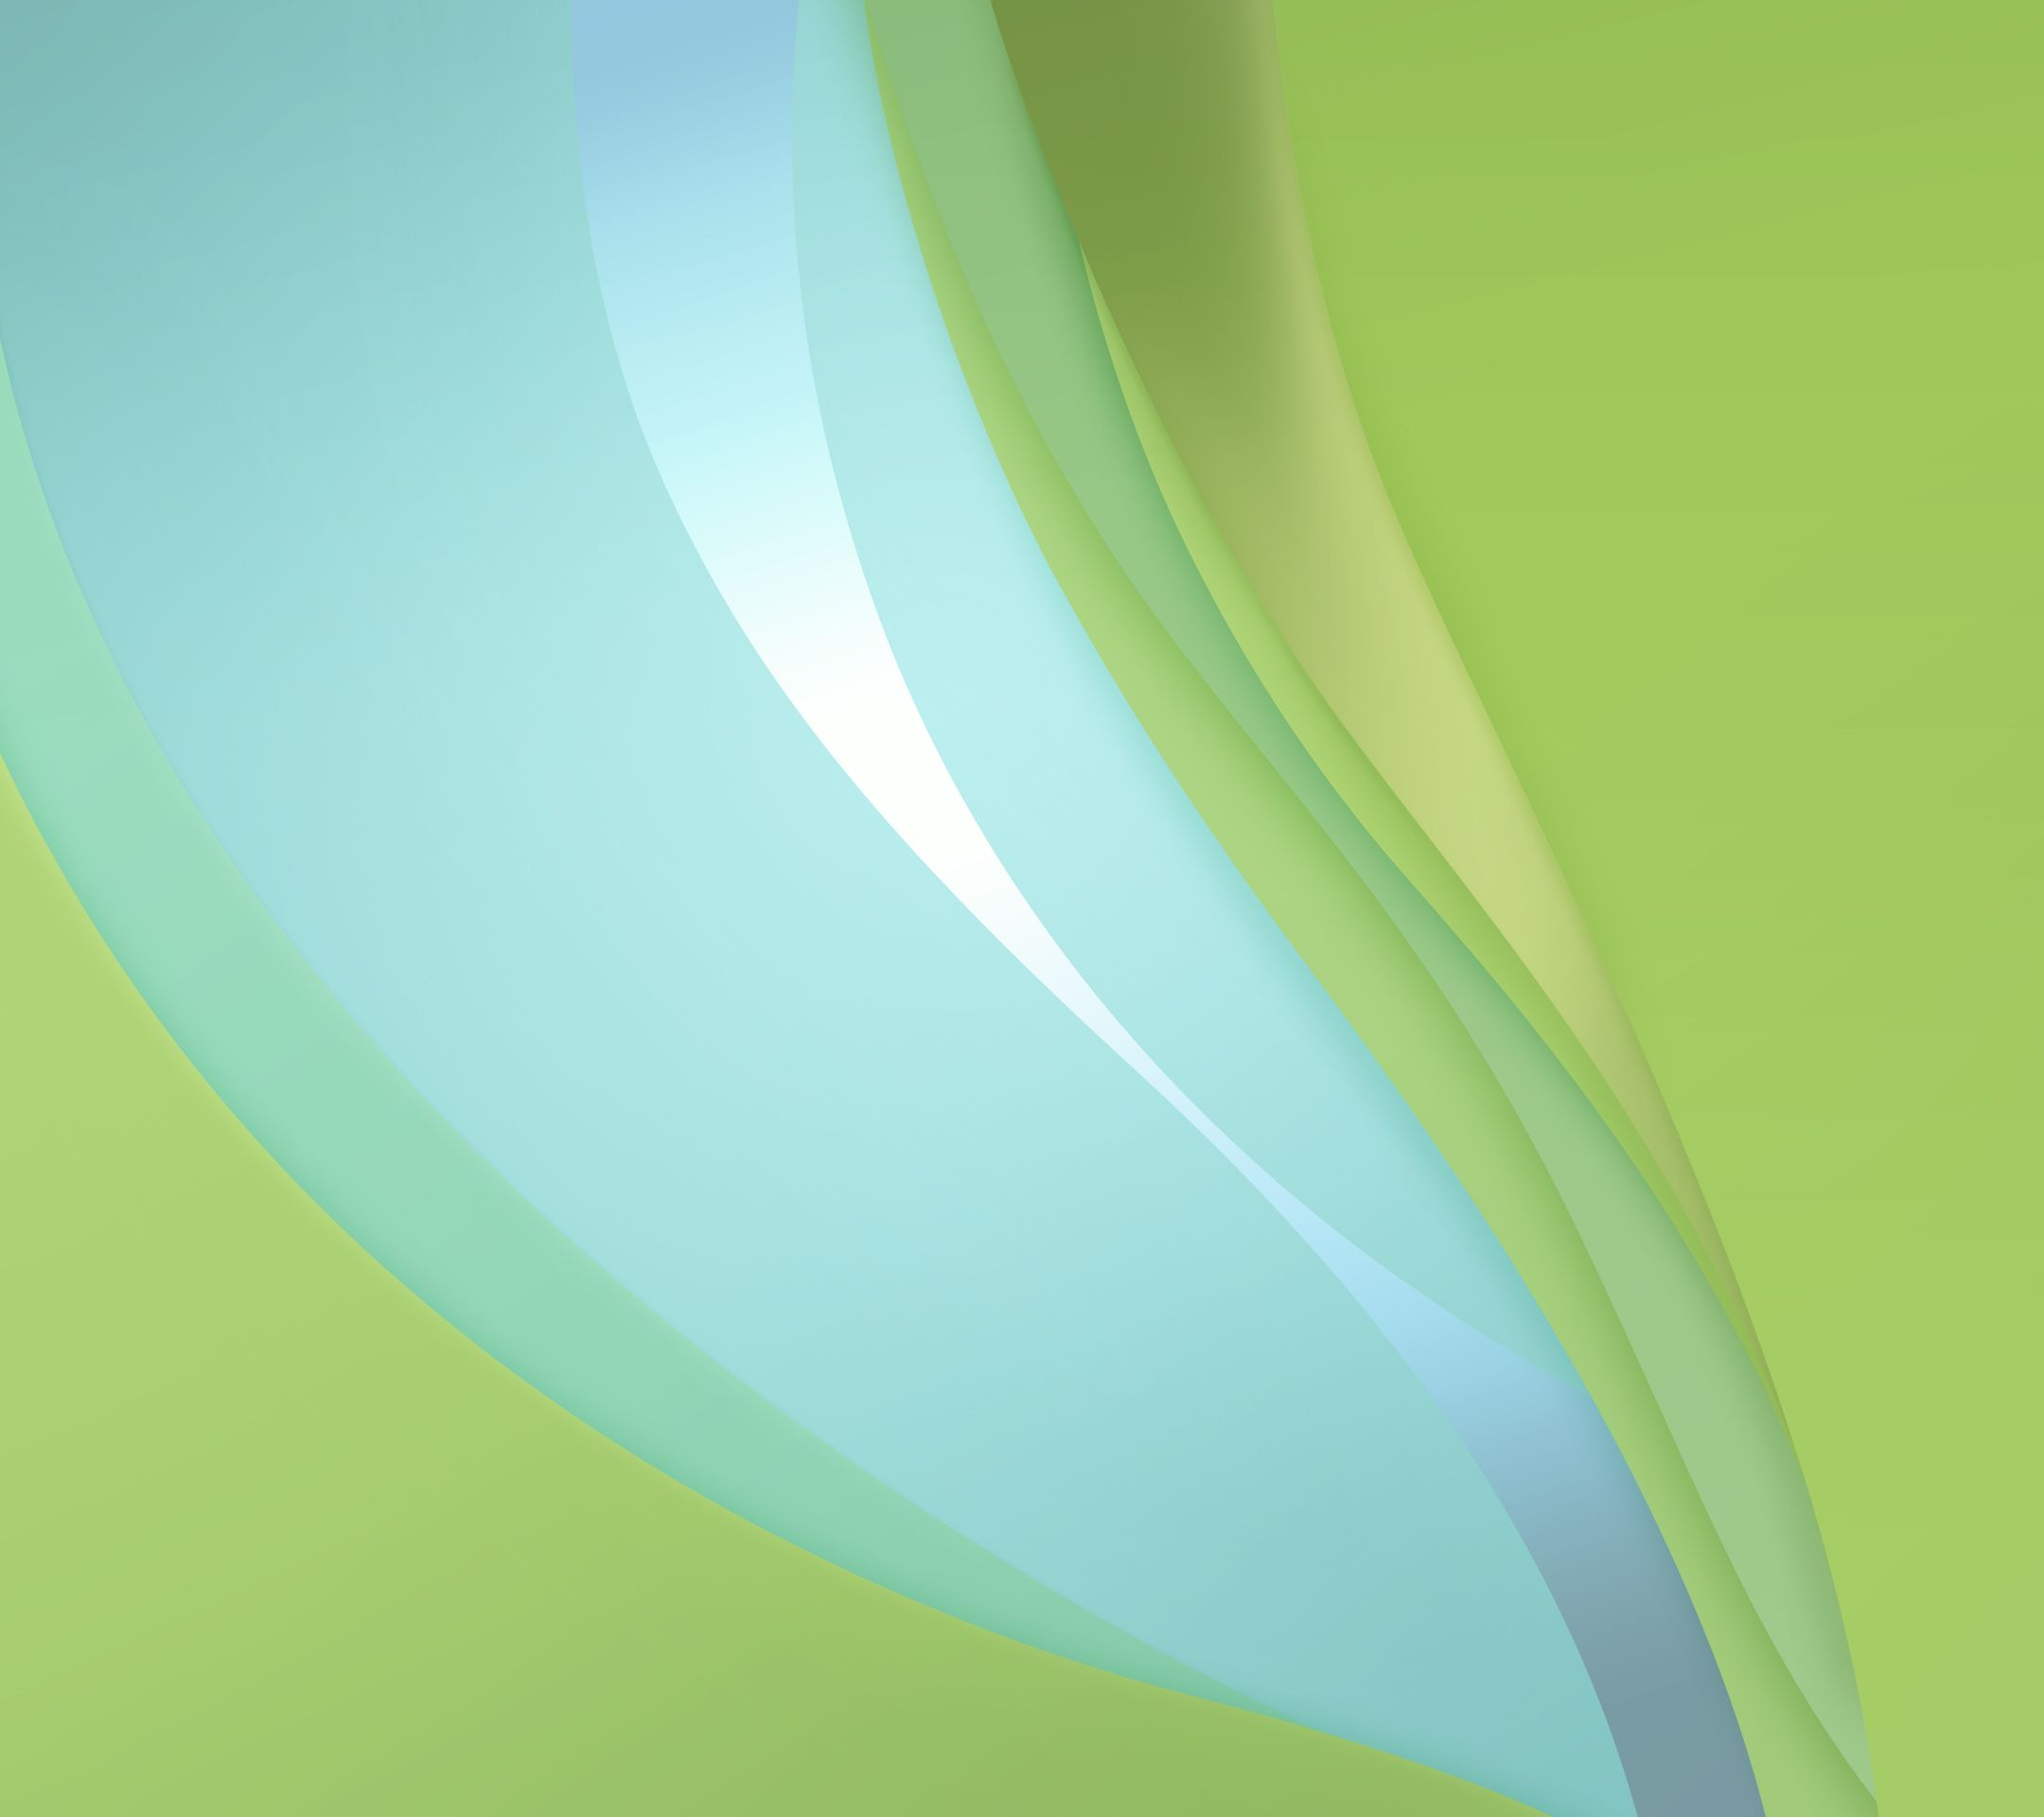 Image For LG G Flex 2 Wallpaper HD Abstract Green Blue